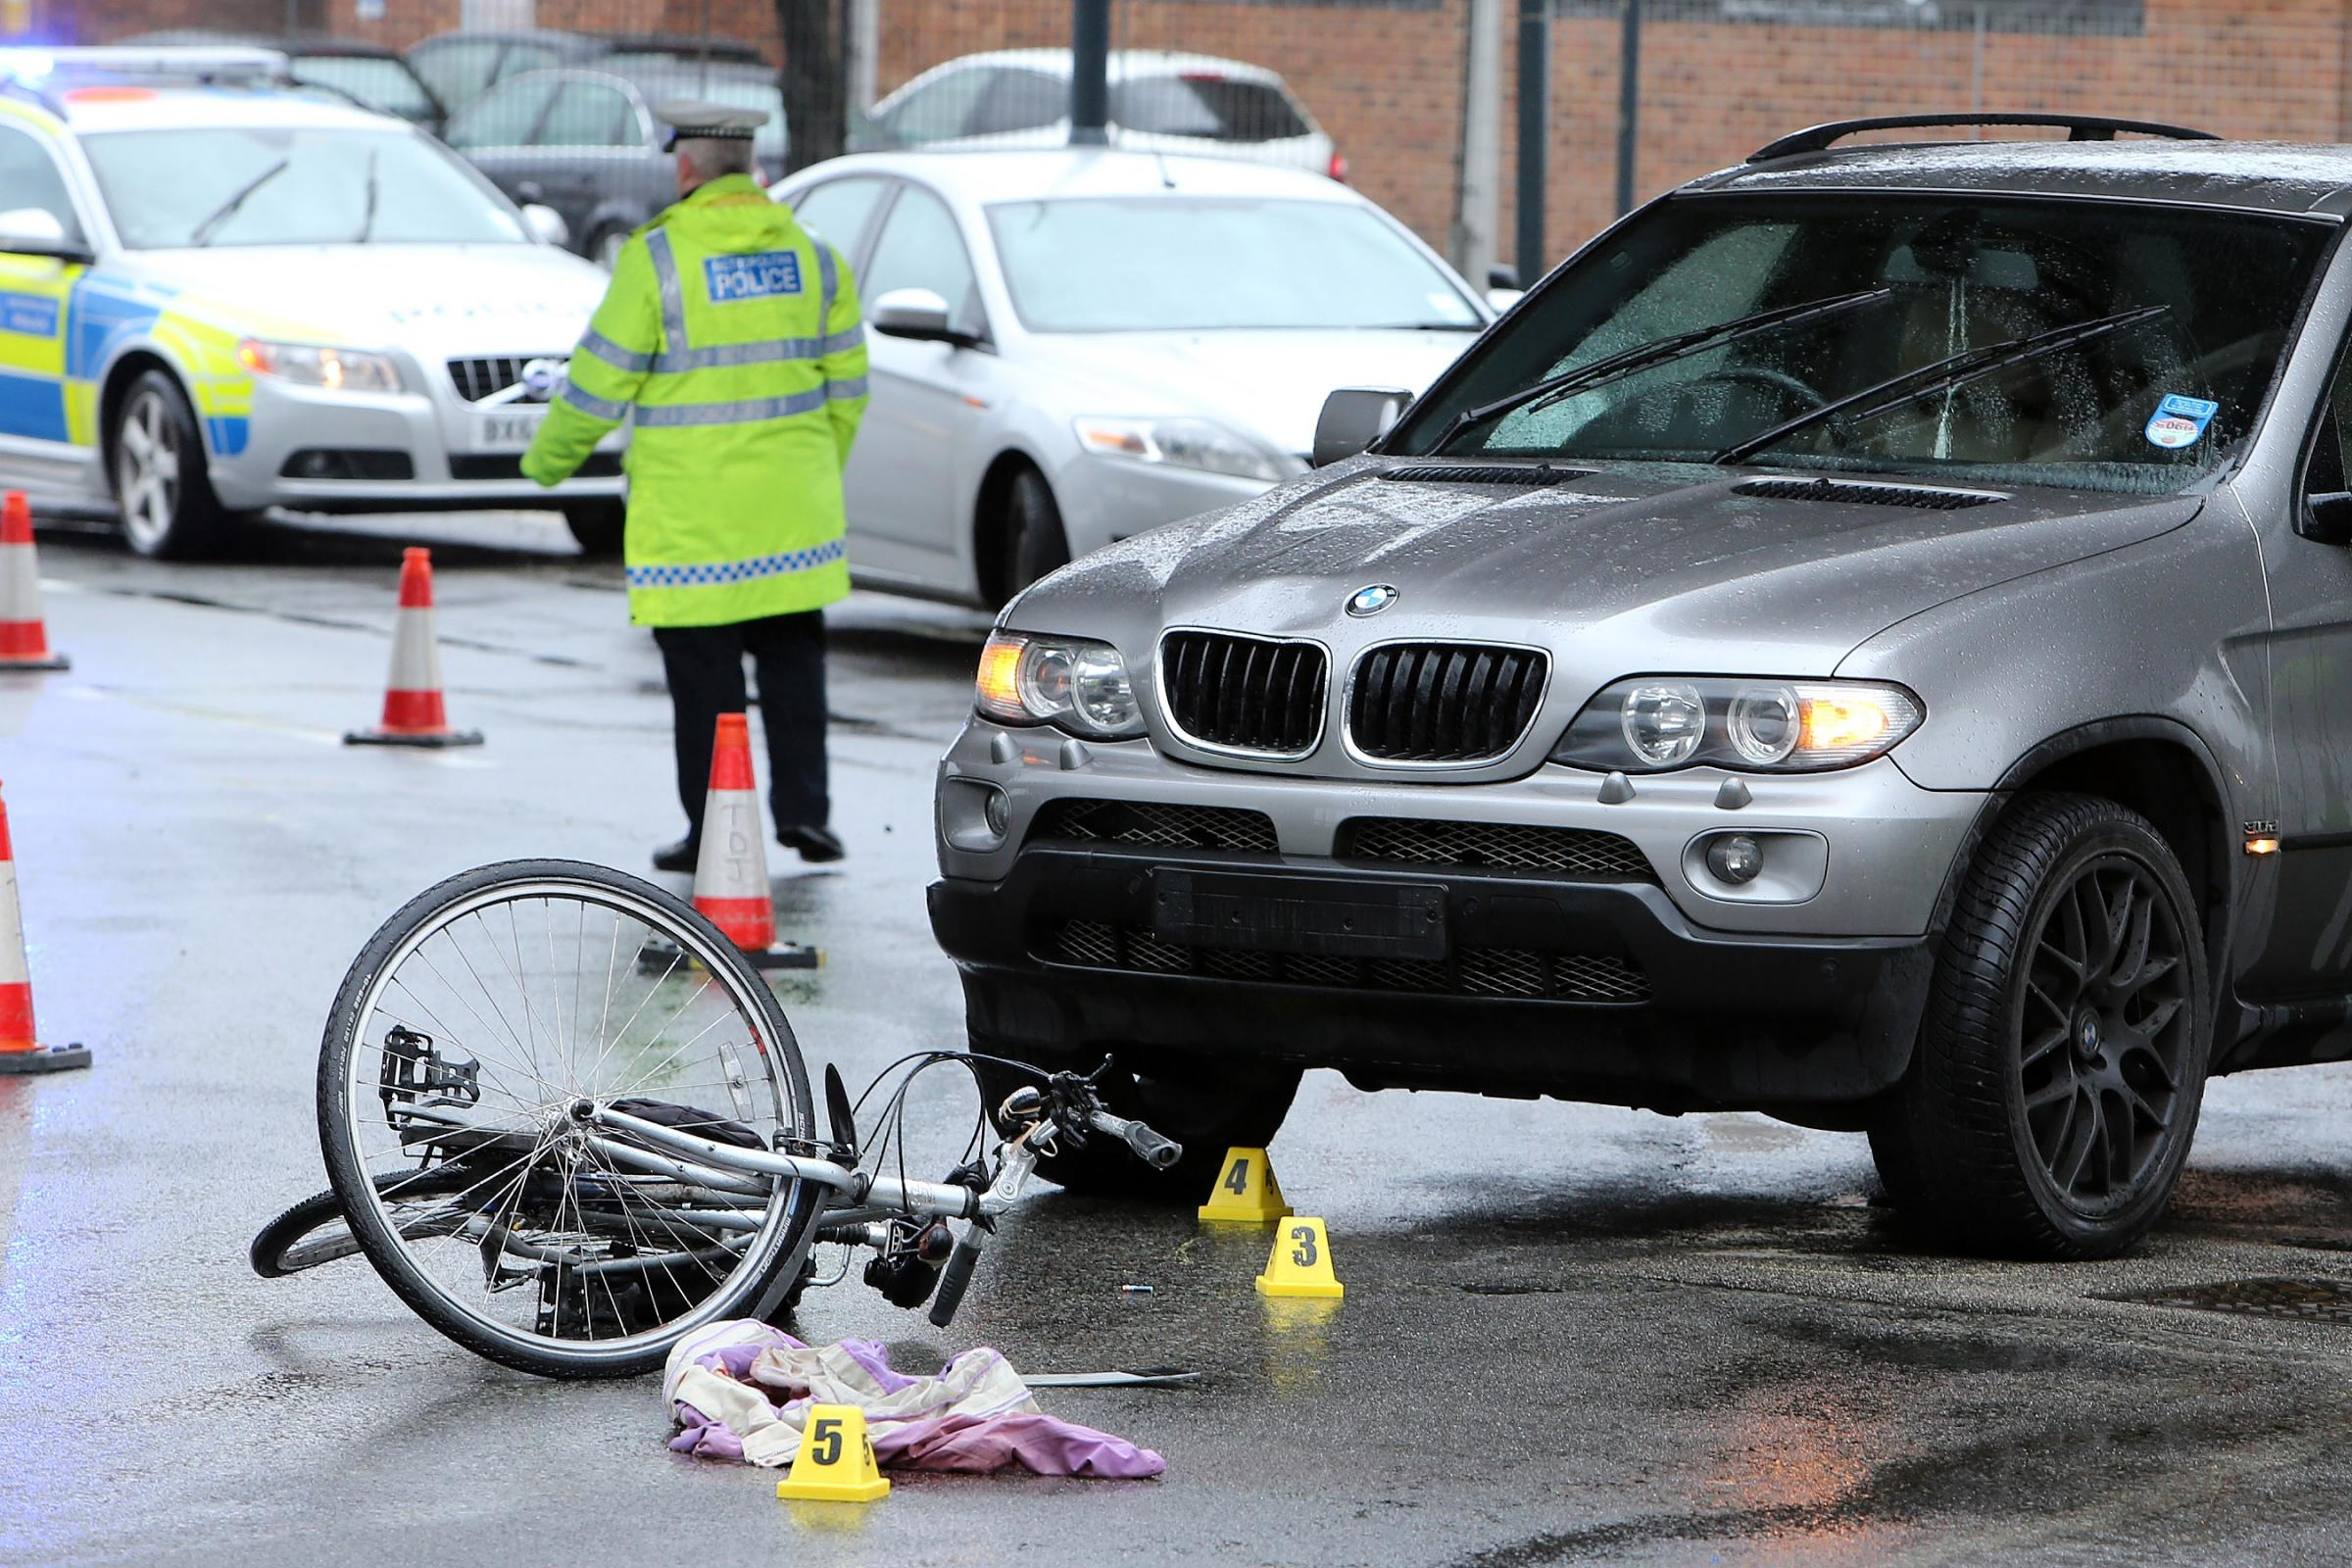 A cyclist has been taken to hospital after an accident on Charlie Brown's roundabout